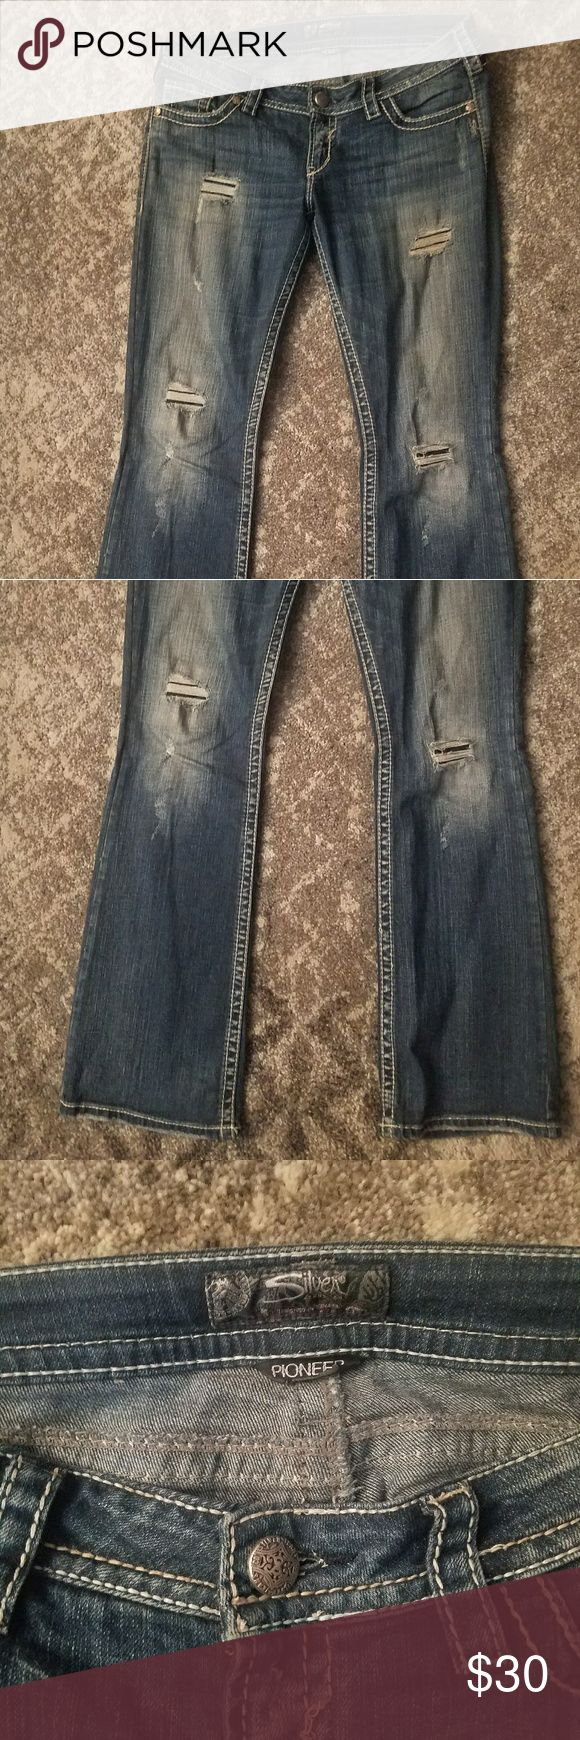 """Women's silver jeans Women's silver pioneer jeans 30x33 dark wash. """"Holes"""" have patches behind so they aren't see thru. Excellent condition. Only wore a few times. Silver Jeans Jeans Flare & Wide Leg"""